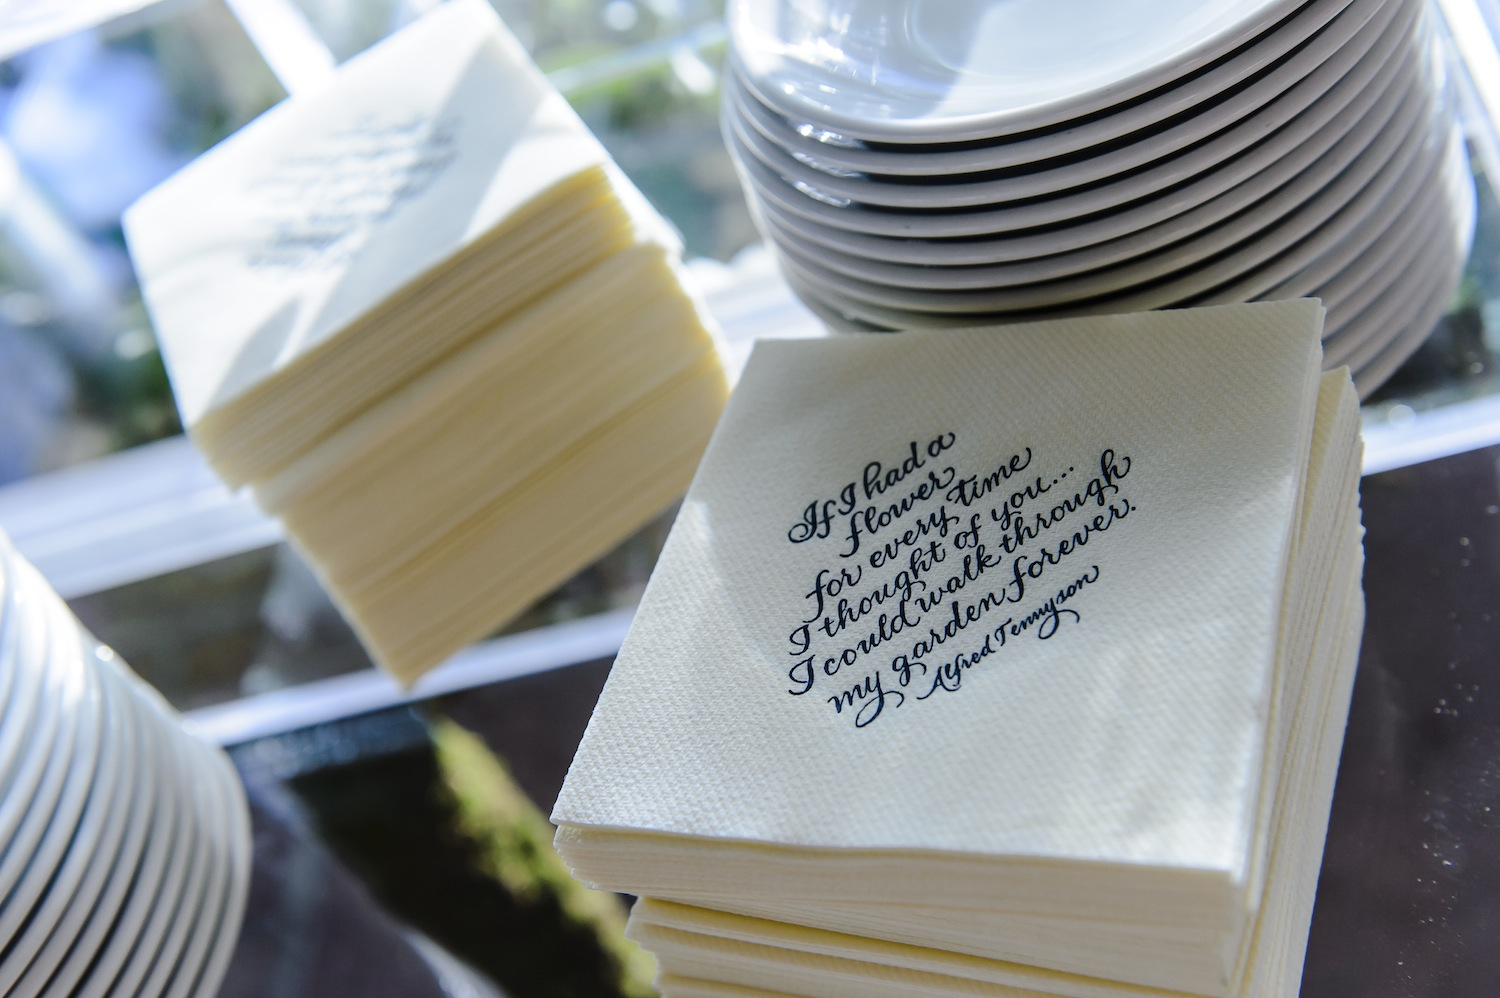 Sentimental and playful quotes to use in wedding dcor inside weddings alfred tennyson love quote on cocktail napkin at wedding reception junglespirit